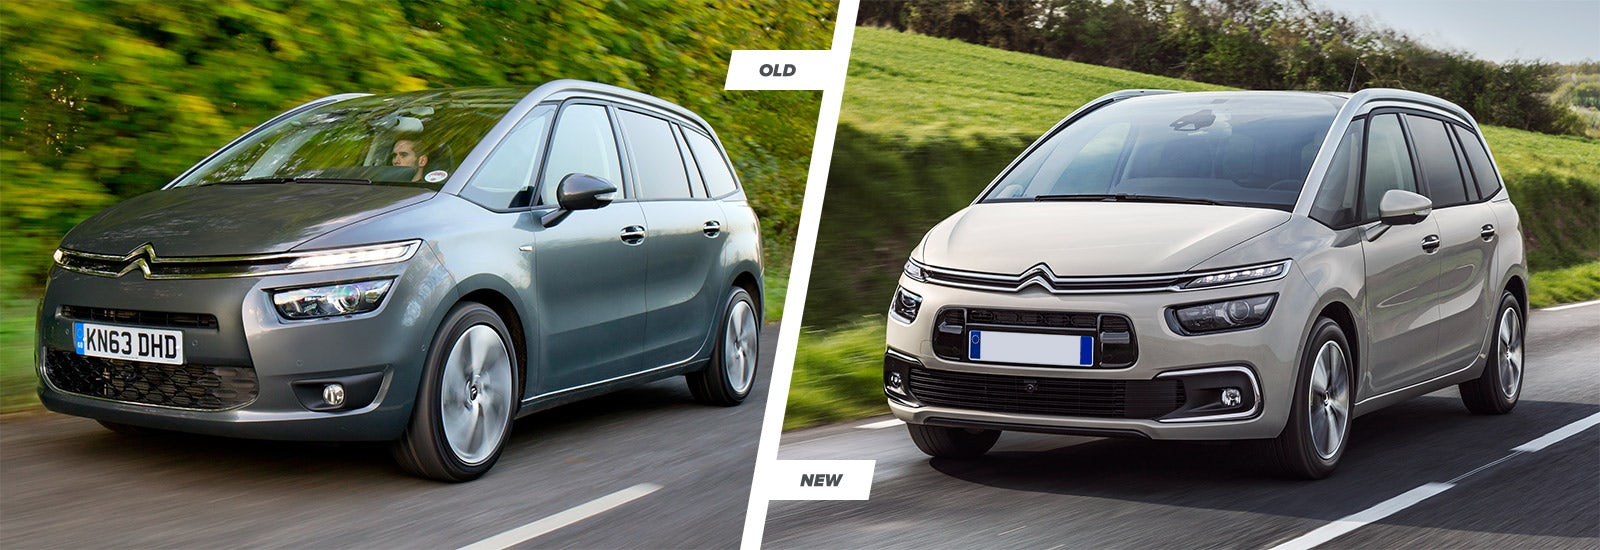 citroen c4 picasso facelift old vs new carwow. Black Bedroom Furniture Sets. Home Design Ideas